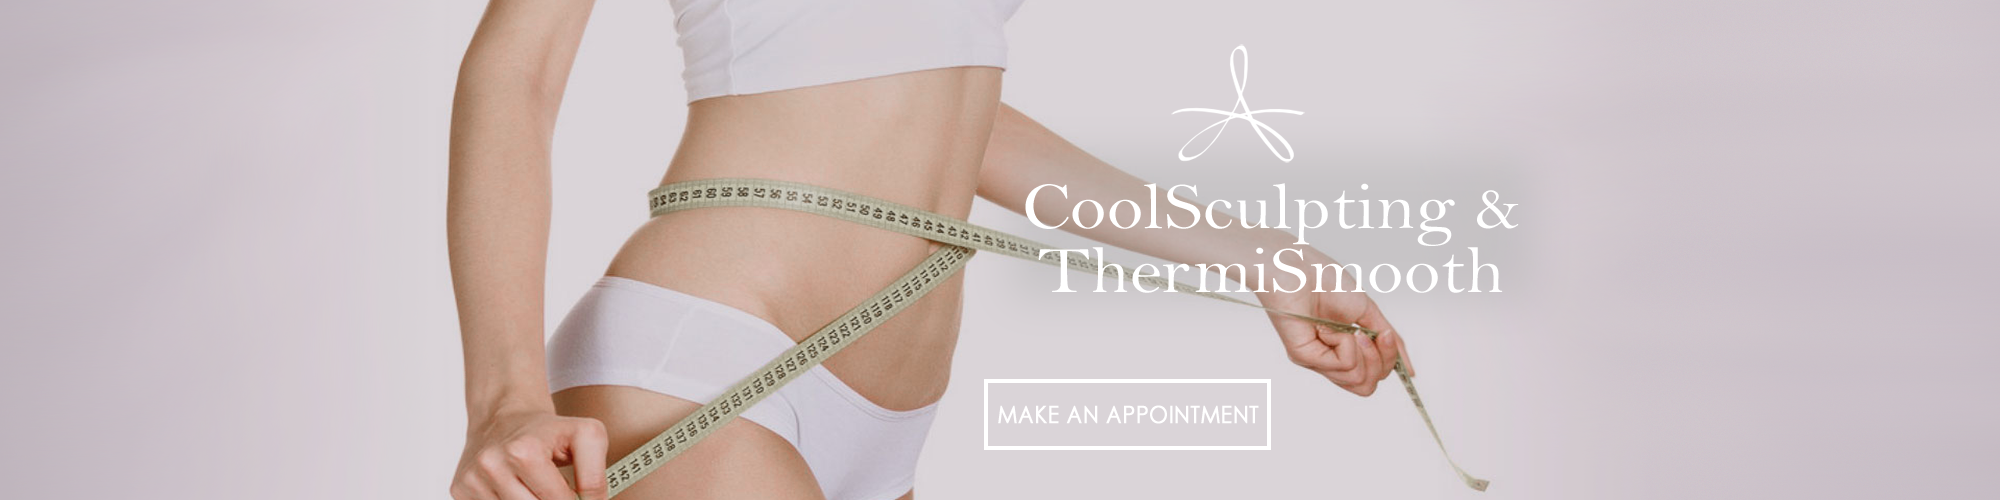 Birmingham's Best CoolSculpting!